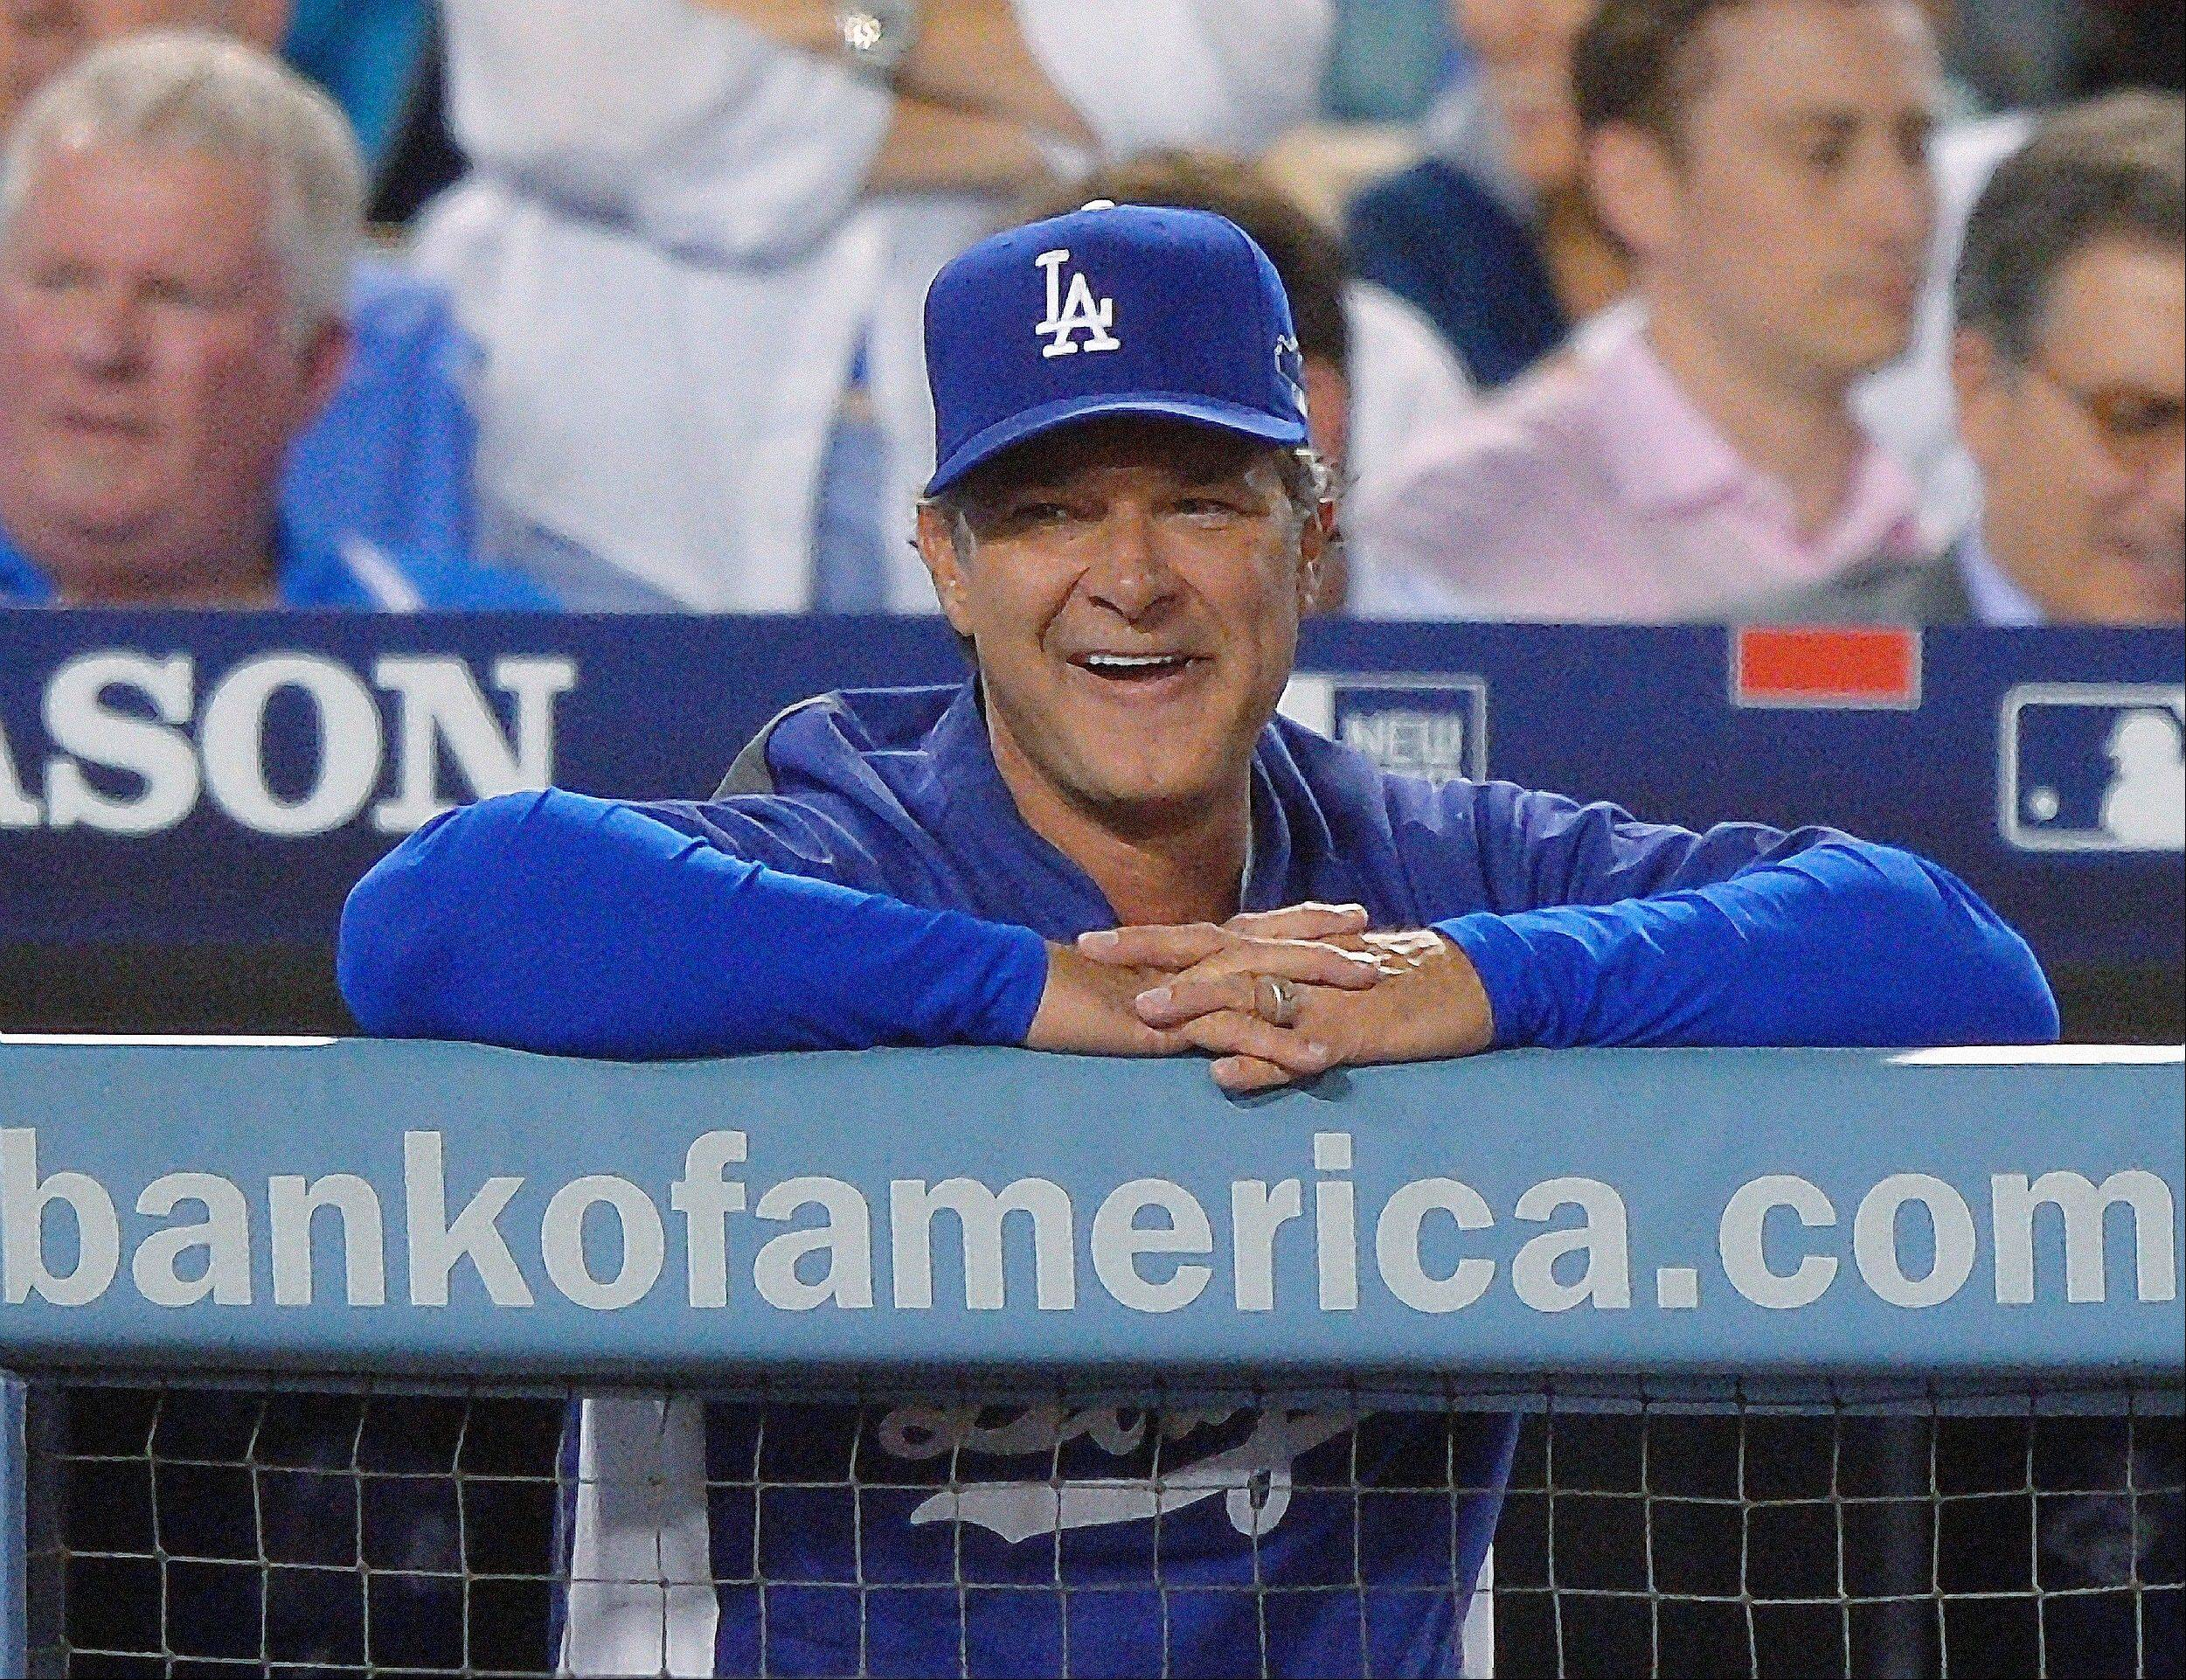 Dodgers manager Don Mattingly smiles during a pitching change in the eighth inning of Game 3.